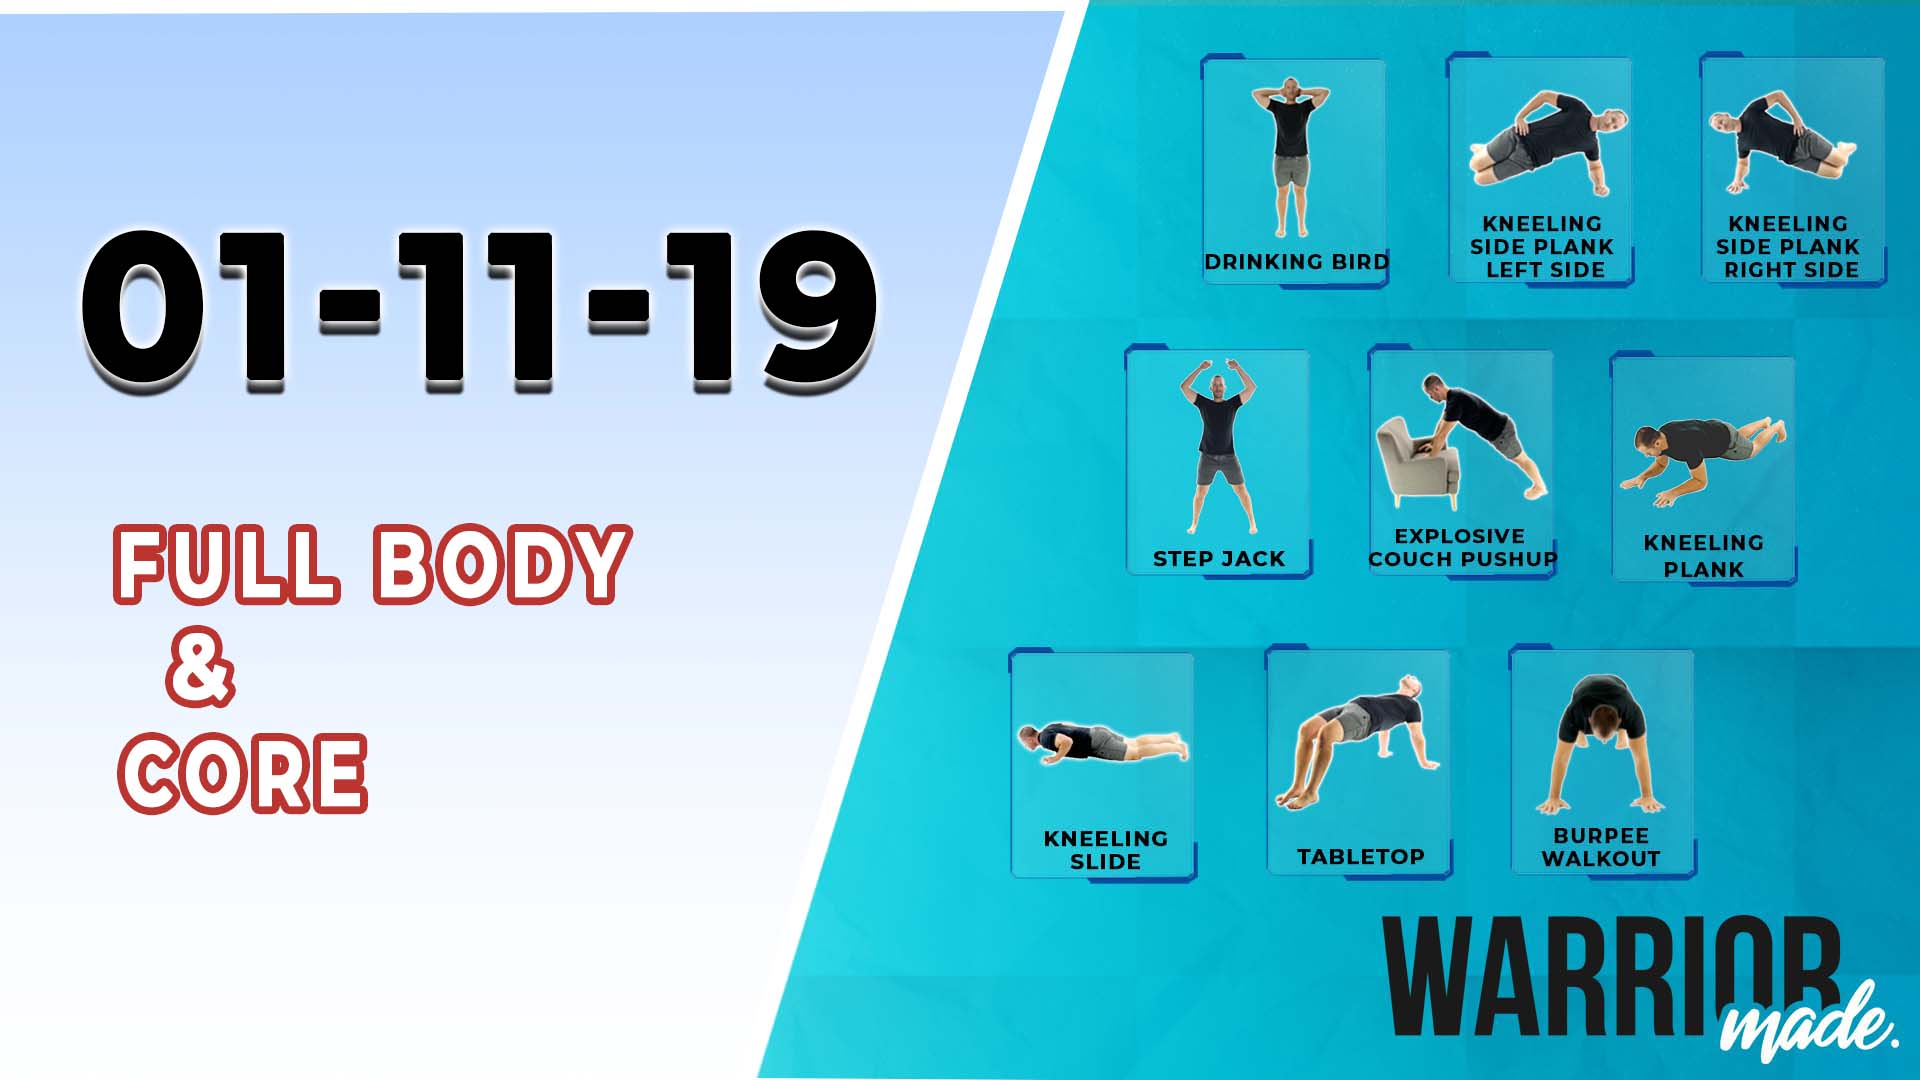 workouts-01-11-19